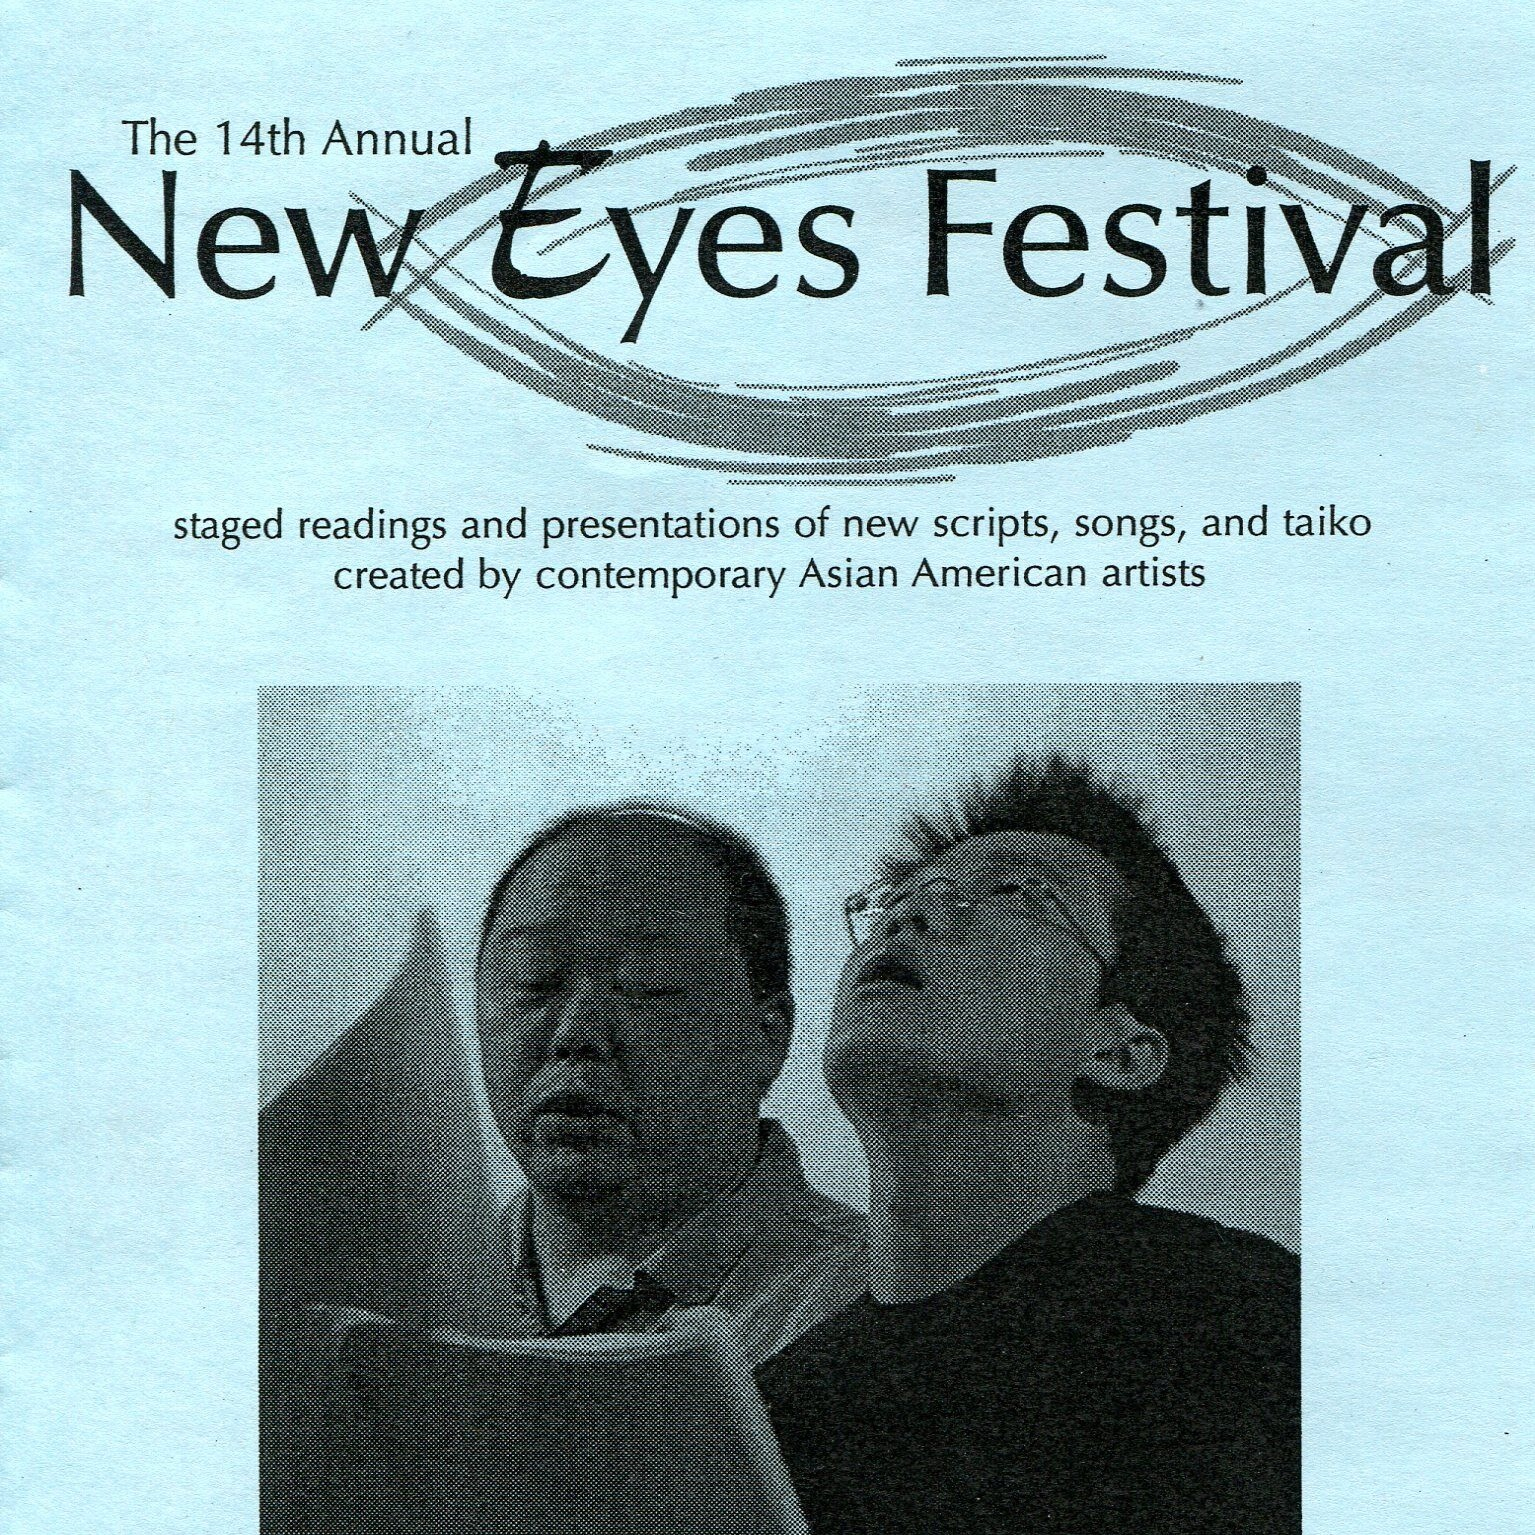 THE NEW EYES FESTIVAL - January 19th- 22nd, 2006